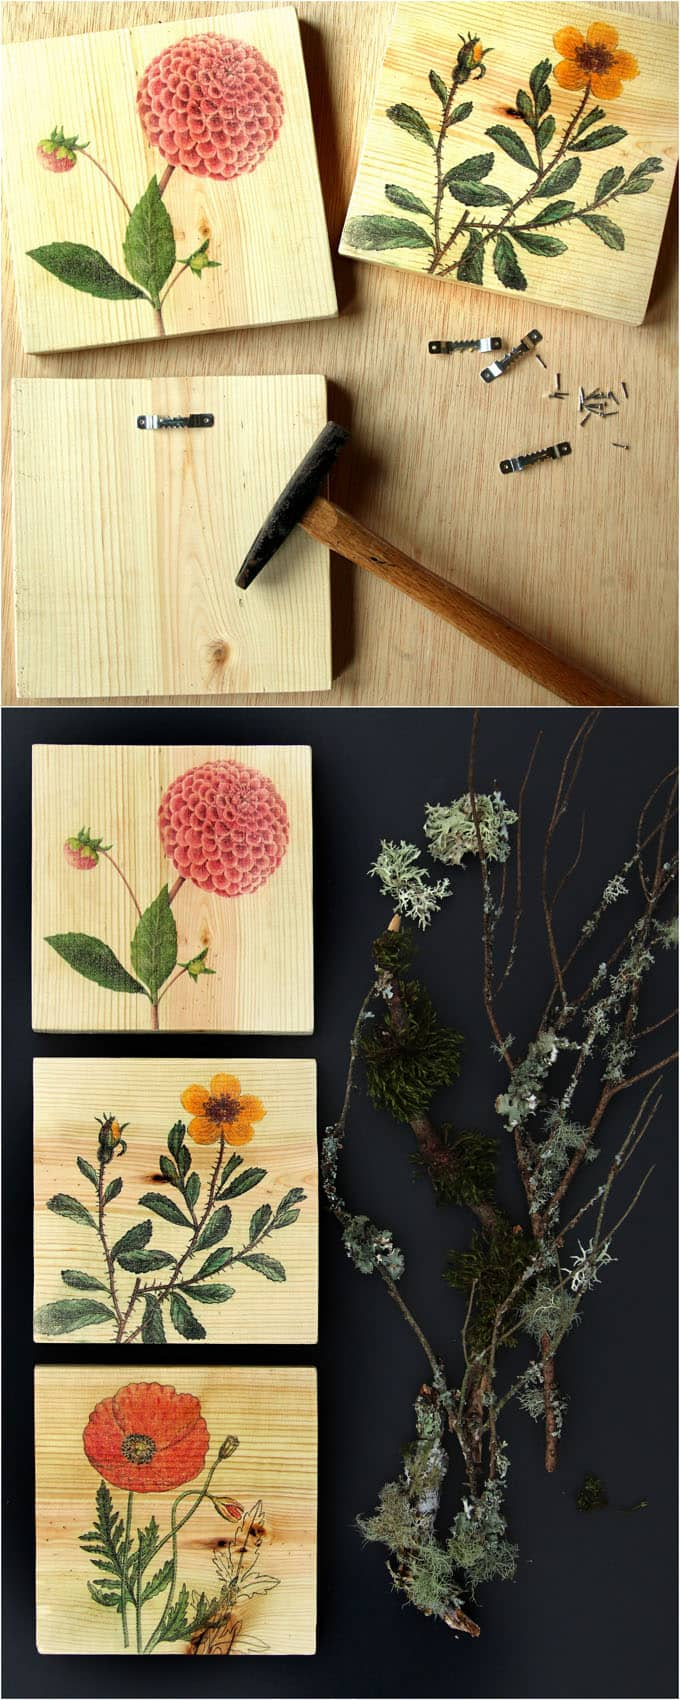 Detailed tutorial on how to transfer image to wood easily and make beautiful, one-of-a-kind printed wood wall art, home decor or gifts! - A Piece Of Rainbow